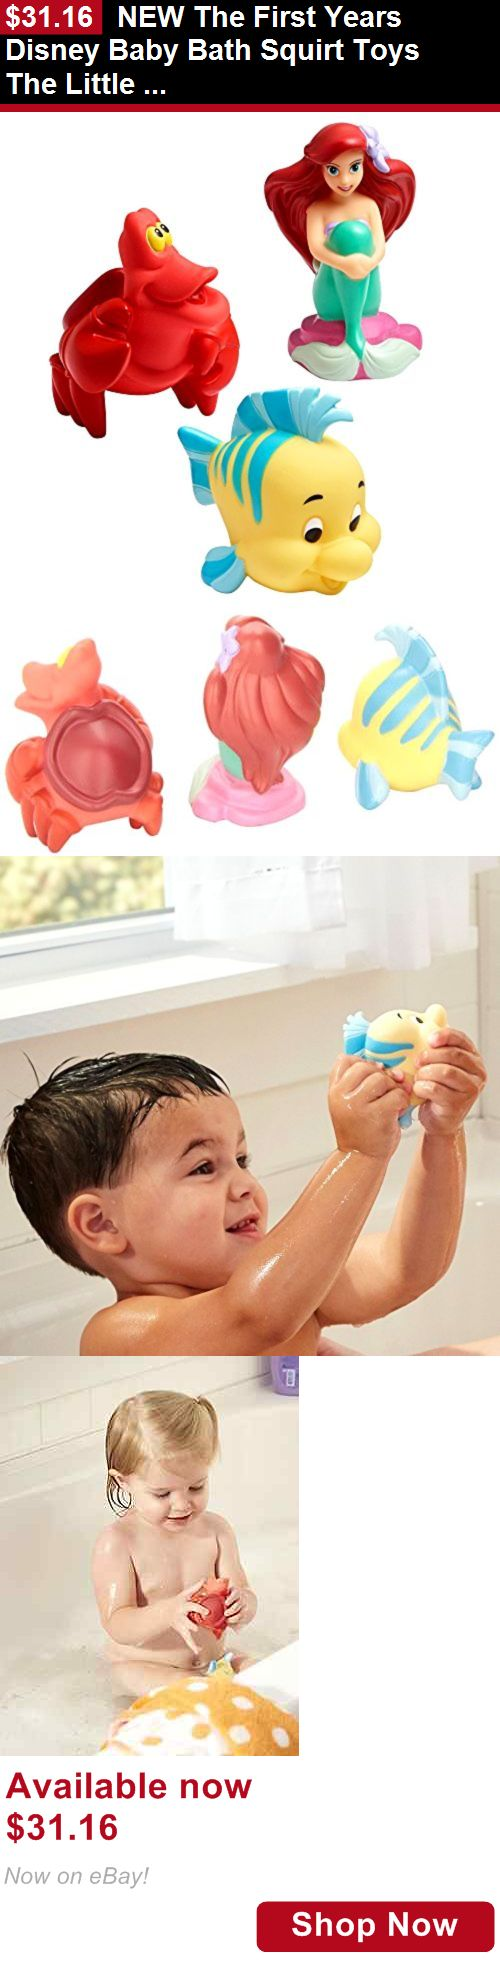 Baby Bathing Accessories: New The First Years Disney Baby Bath Squirt Toys The Little Mermaid BUY IT NOW ONLY: $31.16